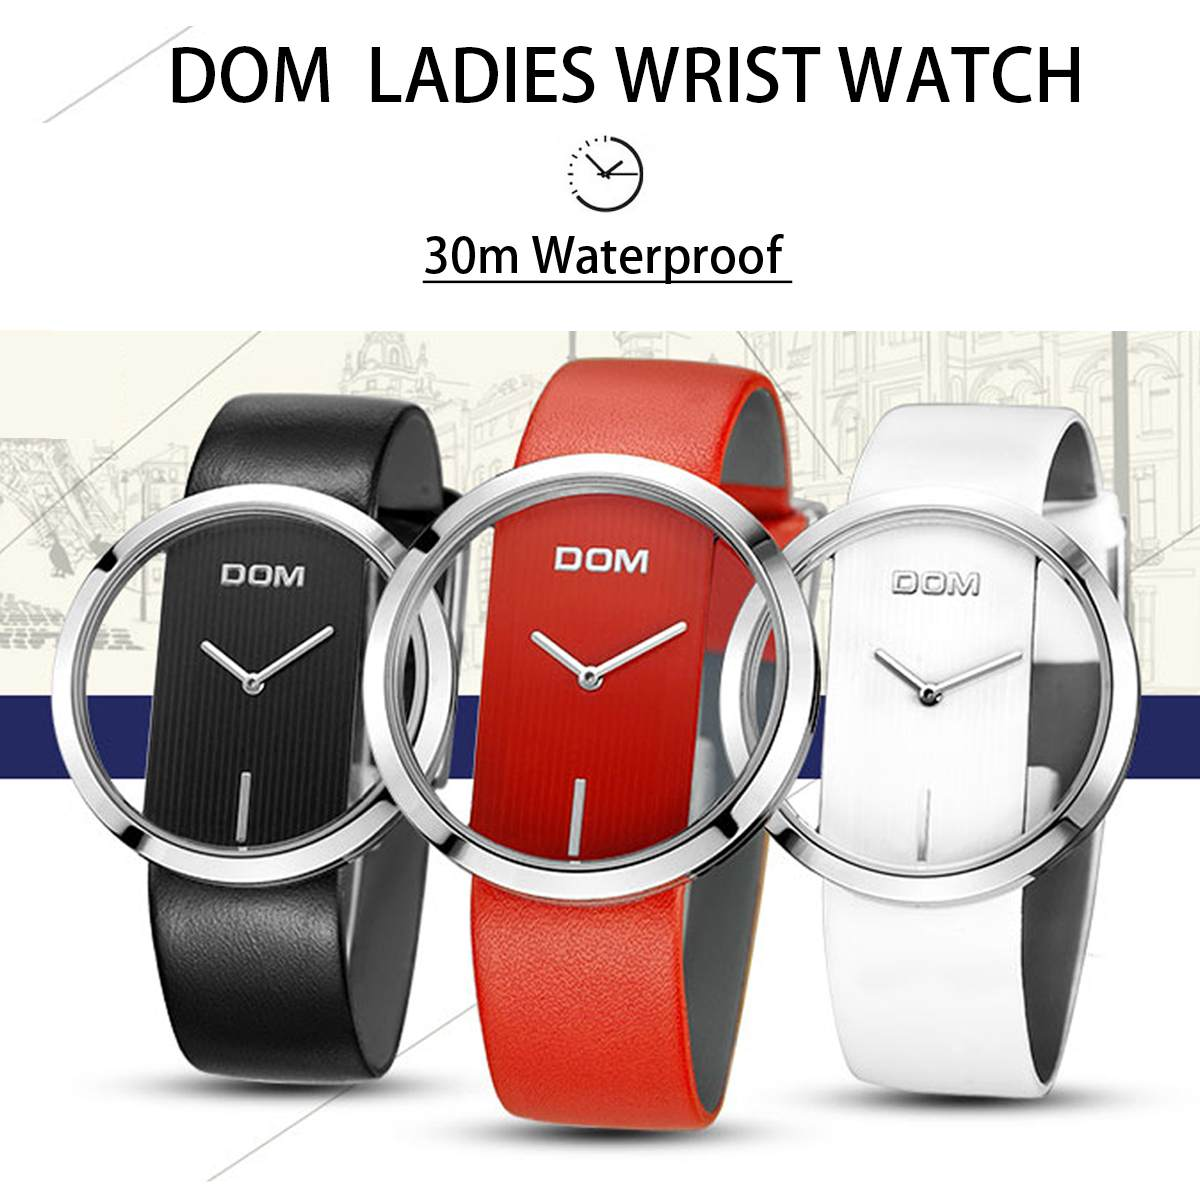 DOM Watch Women Waterproof Luxury Fashion Casual Quartz Watches Leather Sport Lady Elegant Wrist Watch For Girl Women Gift